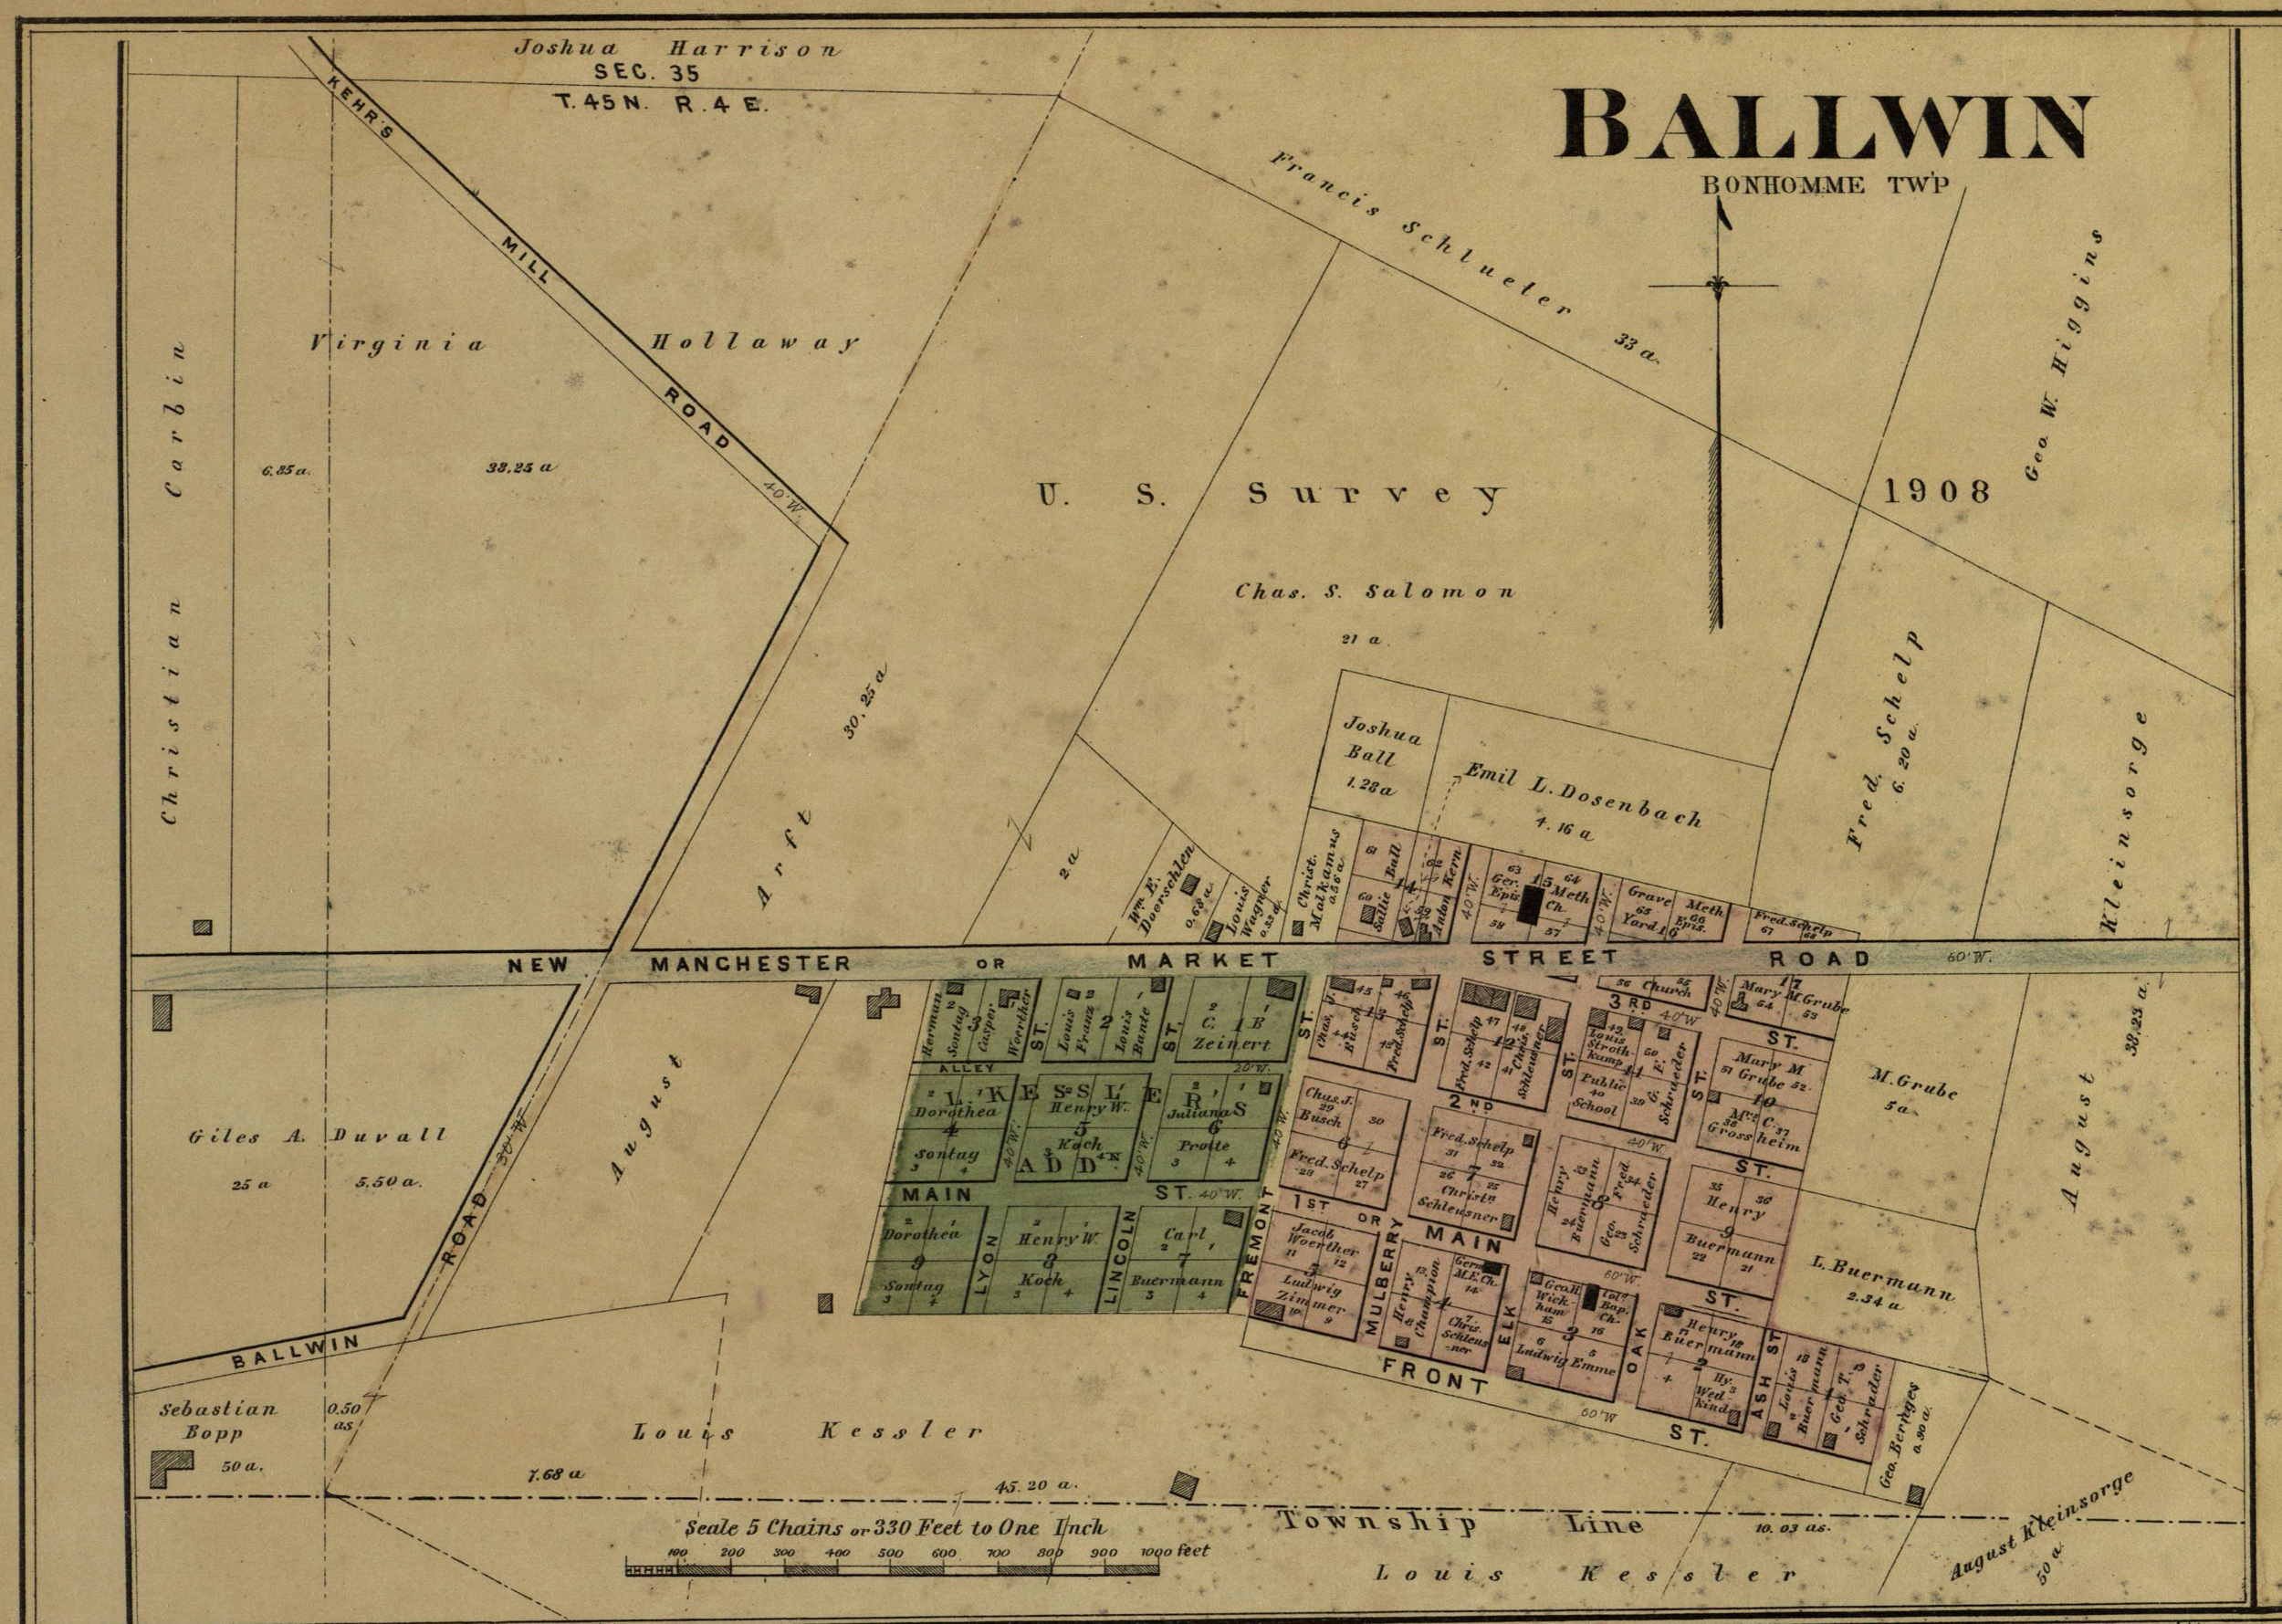 1878 Map of the City of Ballwin, Missouri